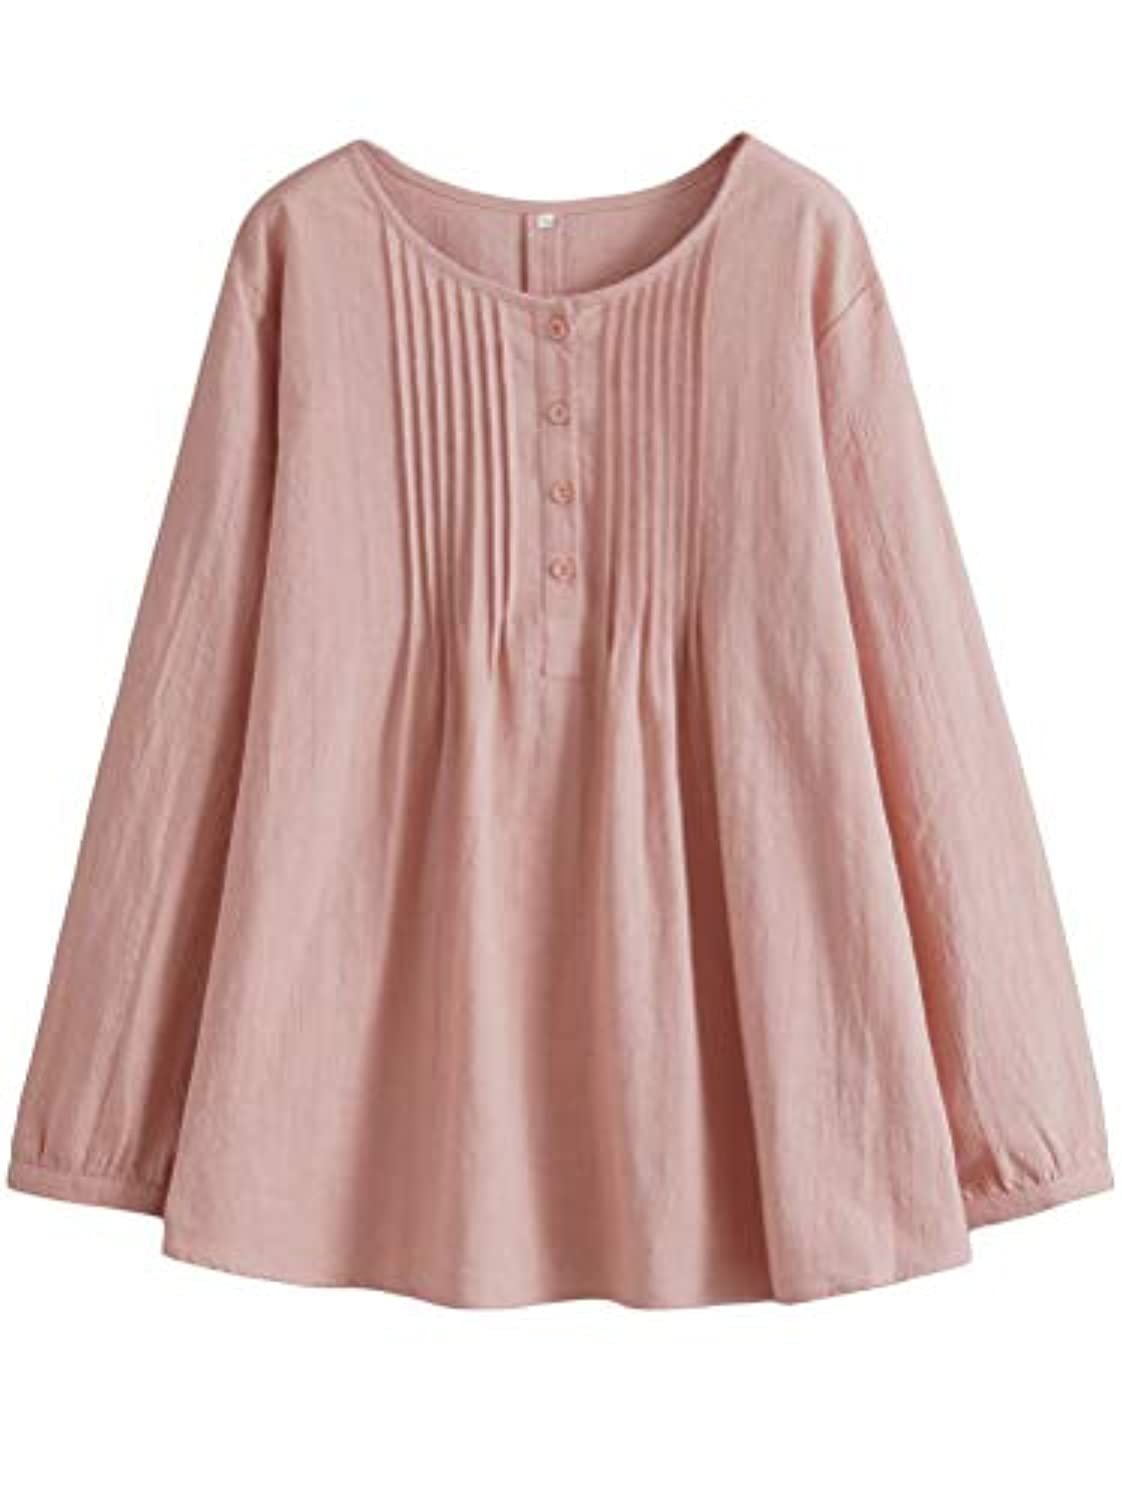 Women's Scoop Neck Pleated Blouse Solid Color Lovely Button Tunic Shirt